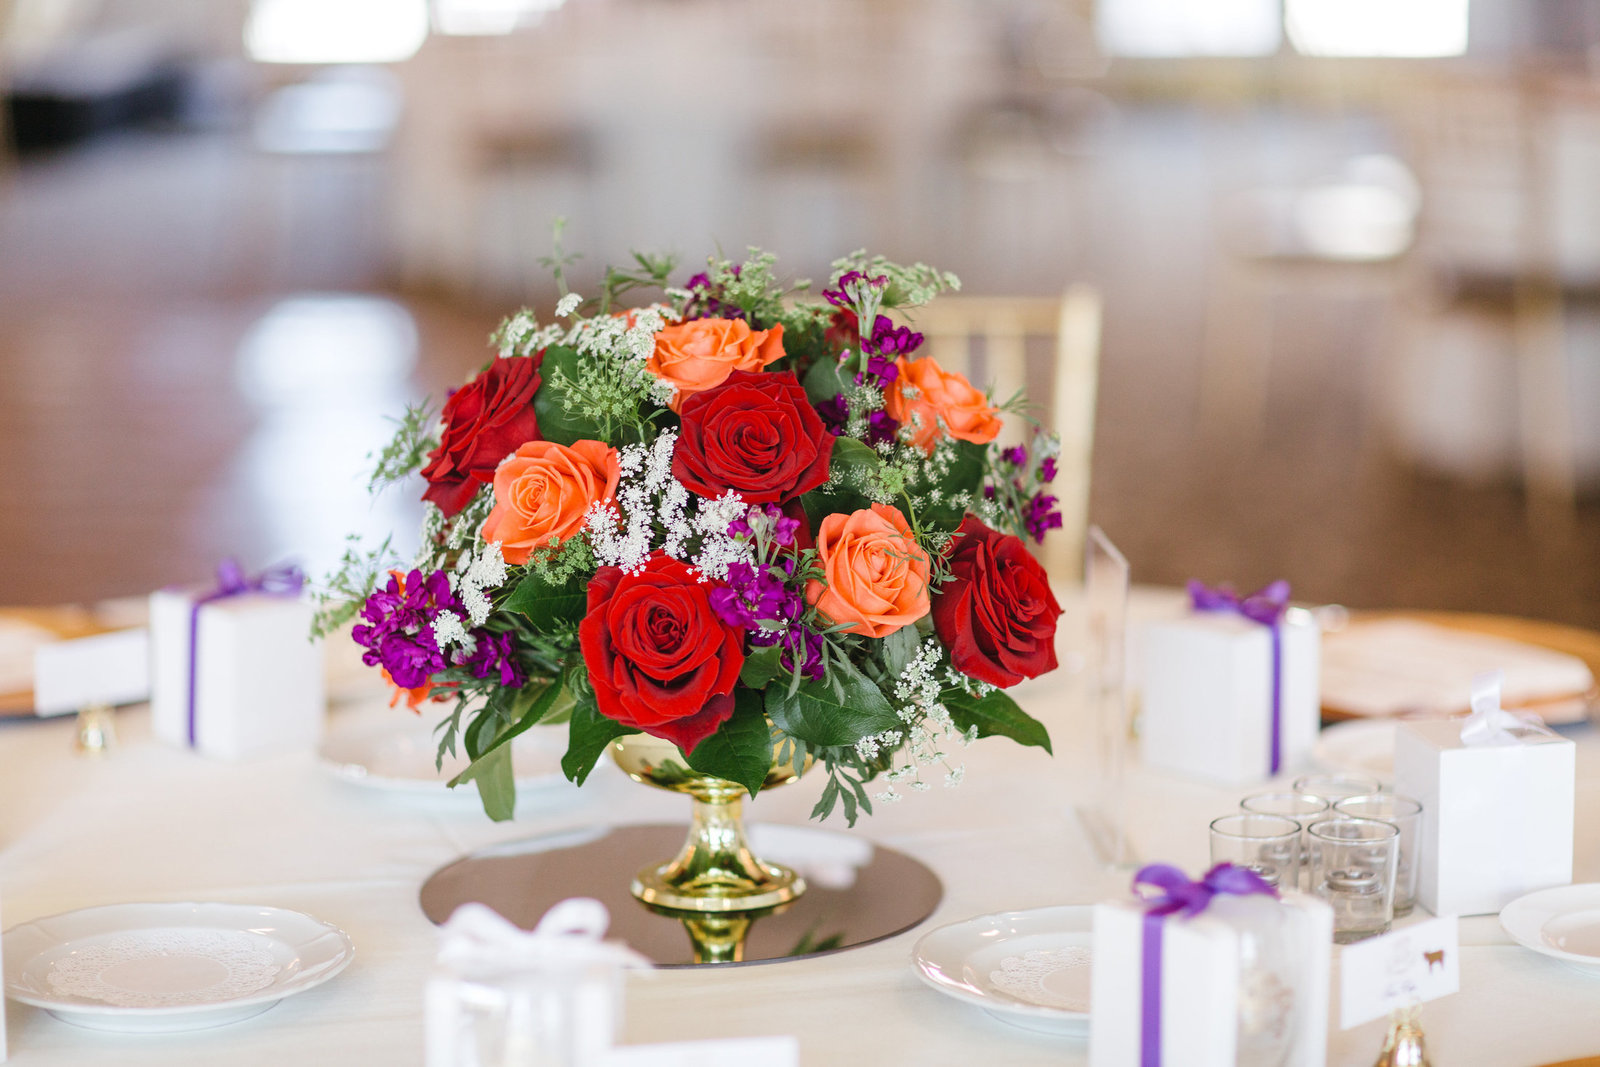 Top wedding planner in Ashburn, VA